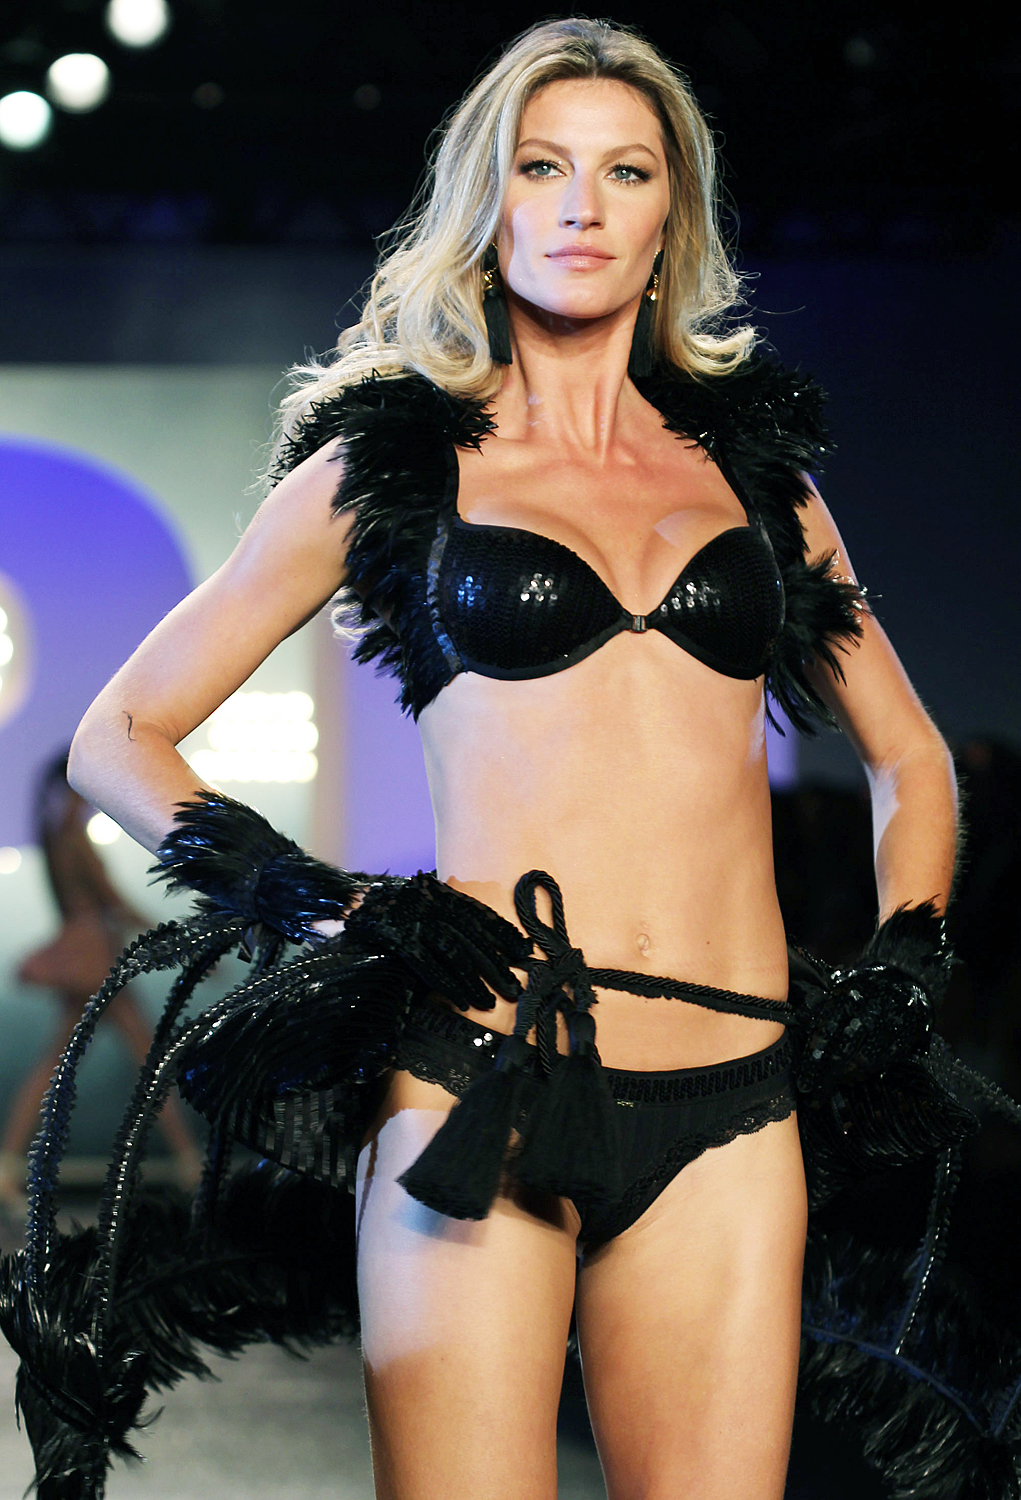 Geez, Gisele! The Brazilian supermodel has pocketed more than $386 million throughout her career, raking in $47 million alone in 2014, according to Forbes .